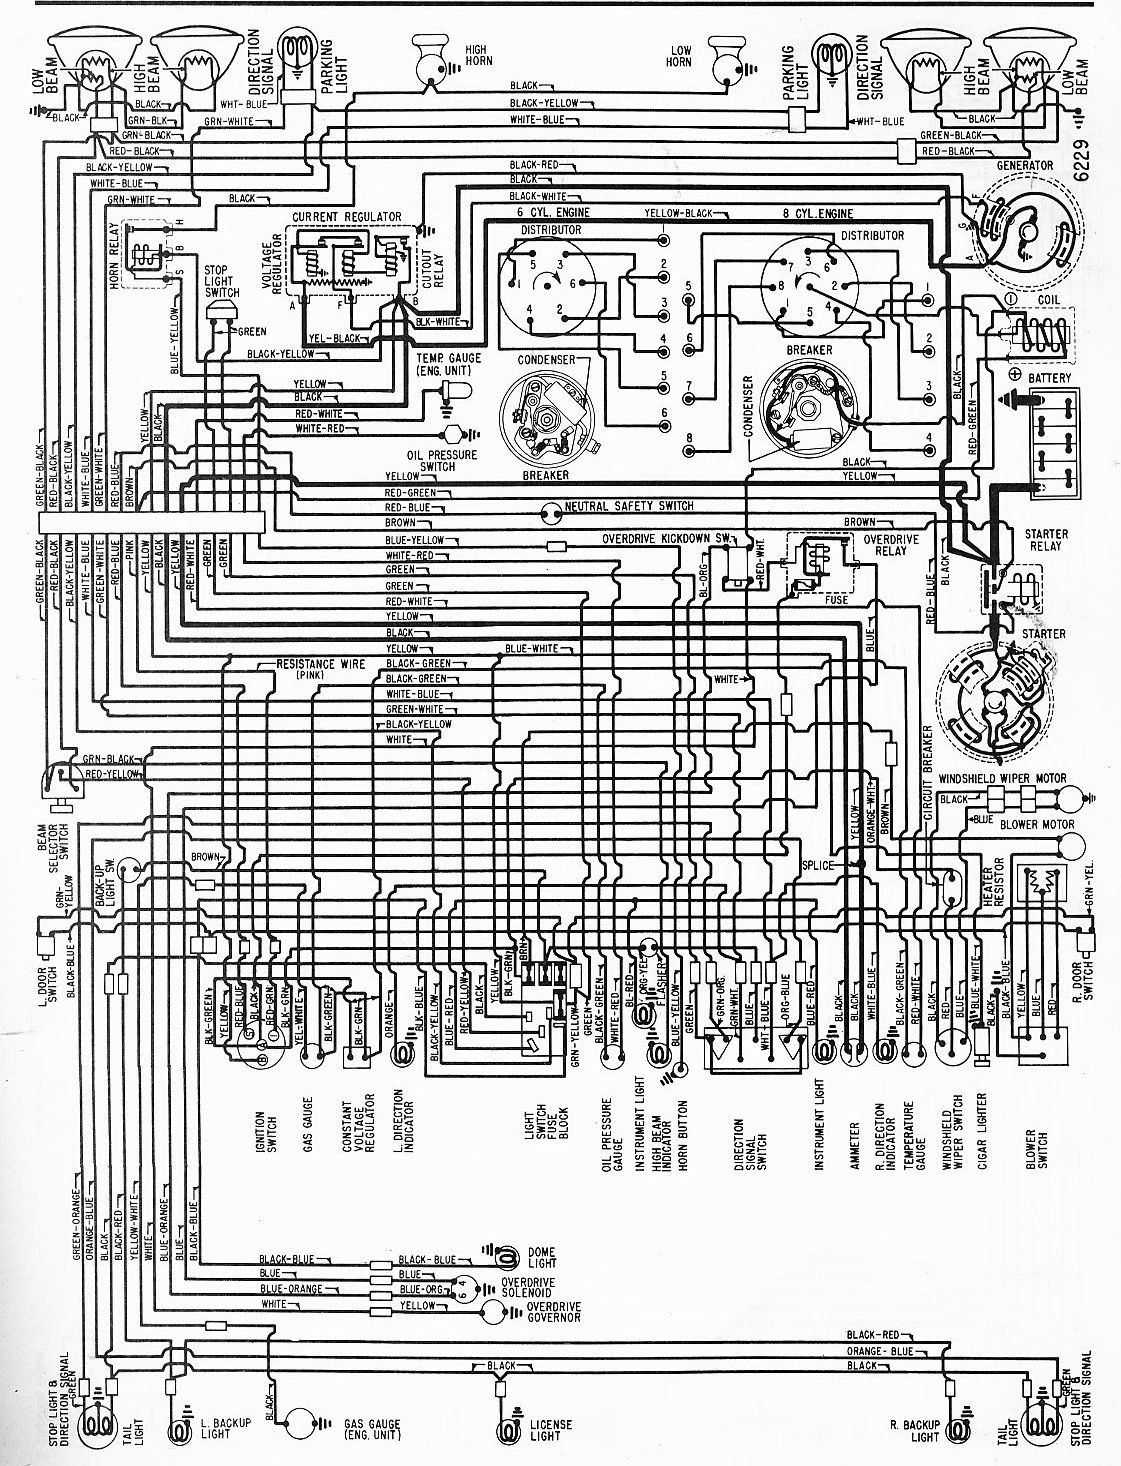 chevy c10 truck fuse box wiring diagrams 1972 chevy c20 wiring diagram 1972 chevy wiring diagram #8